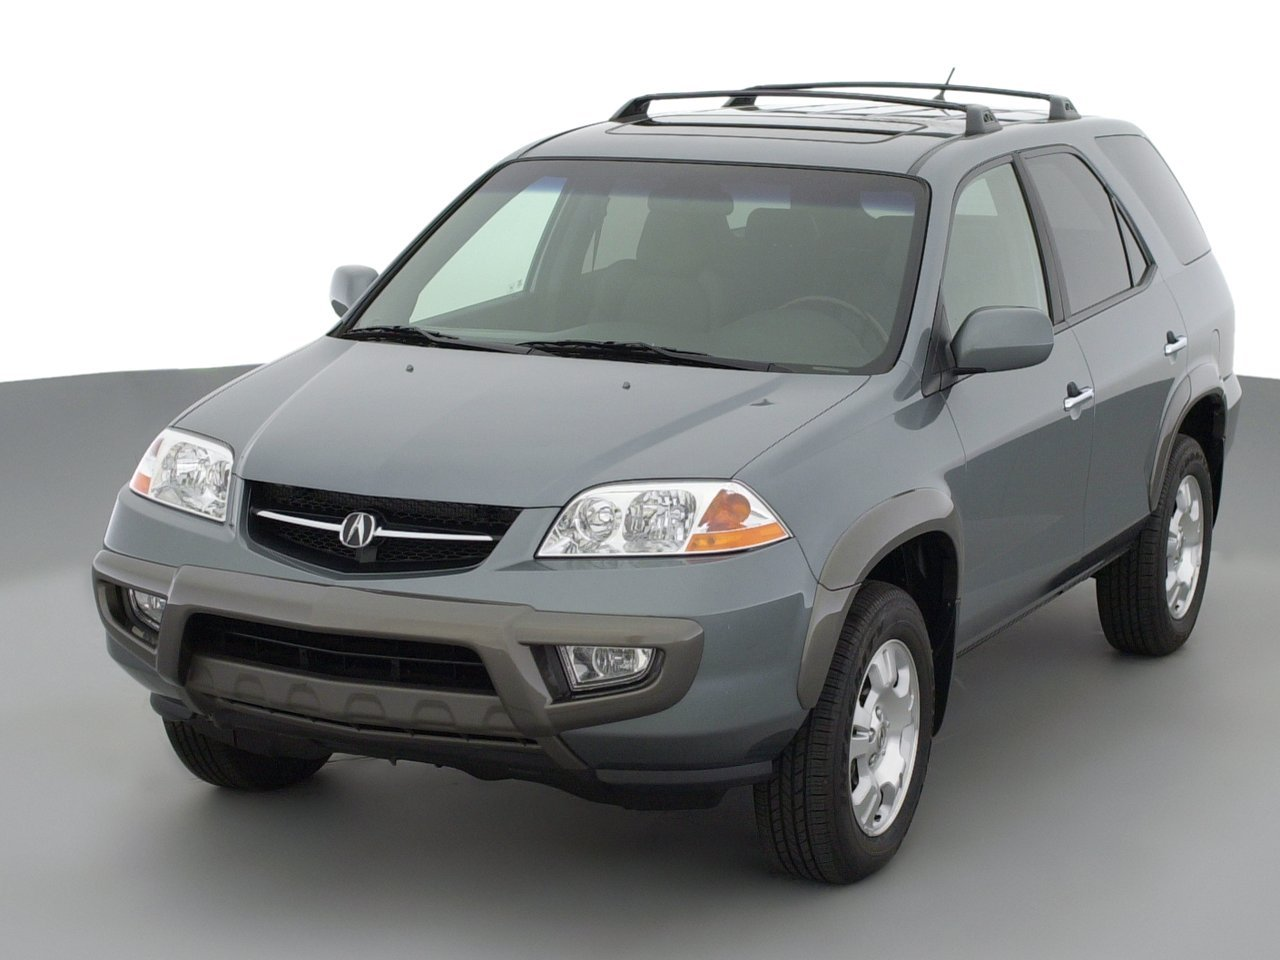 com 2002 acura mdx reviews images and specs vehicles